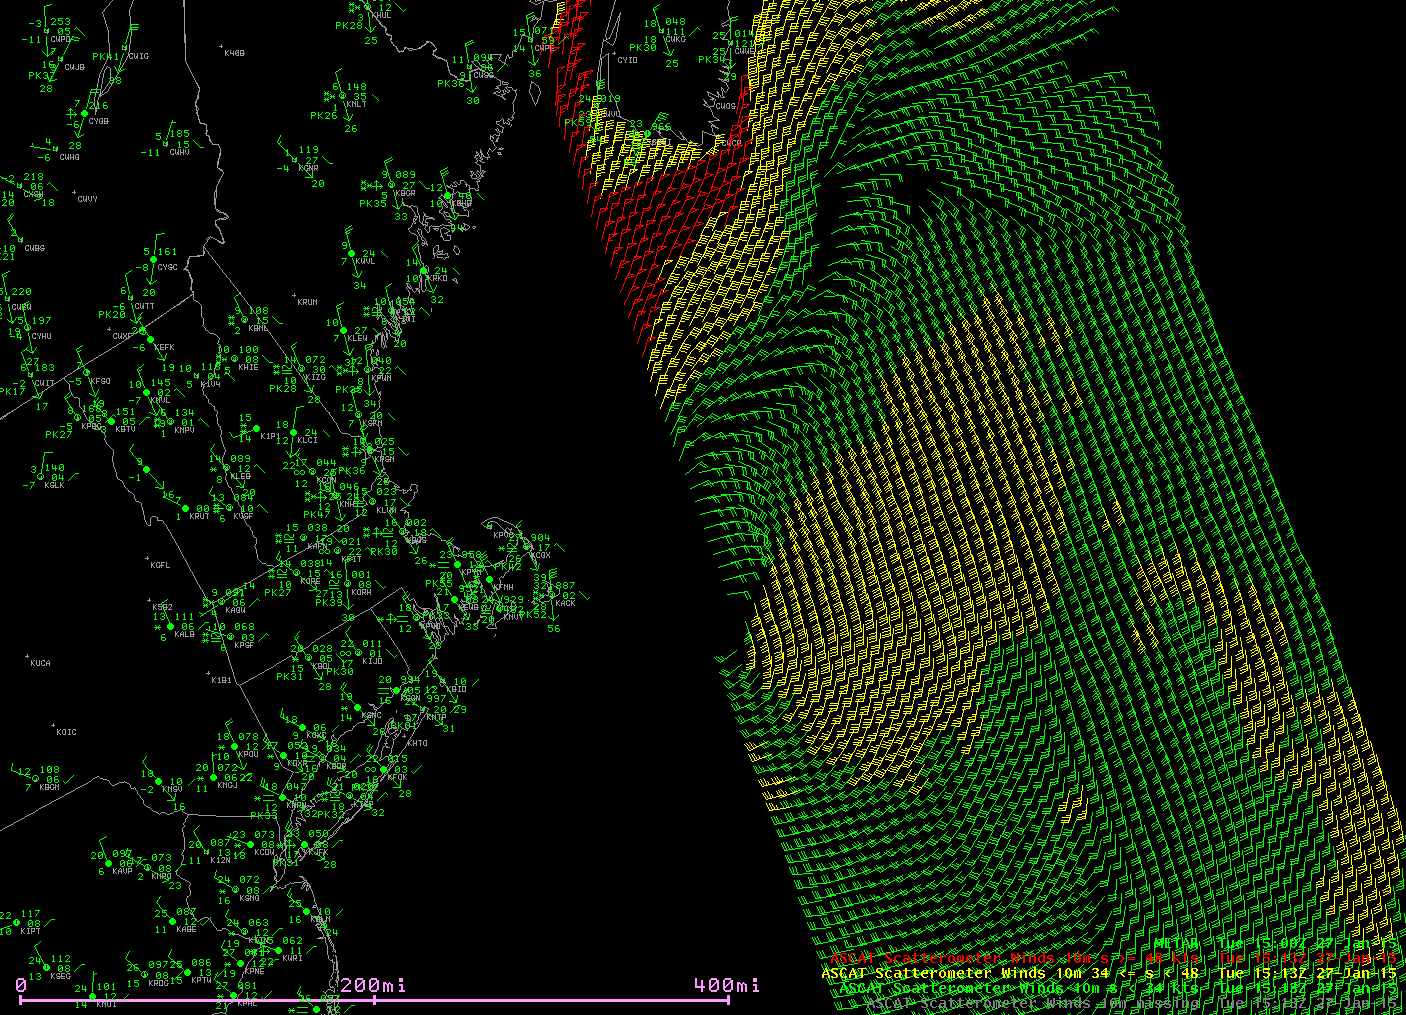 METOP-A ASCAT winds, 1513 UTC on 27 January 2015 along with surface METAR reports (click to enlarge)